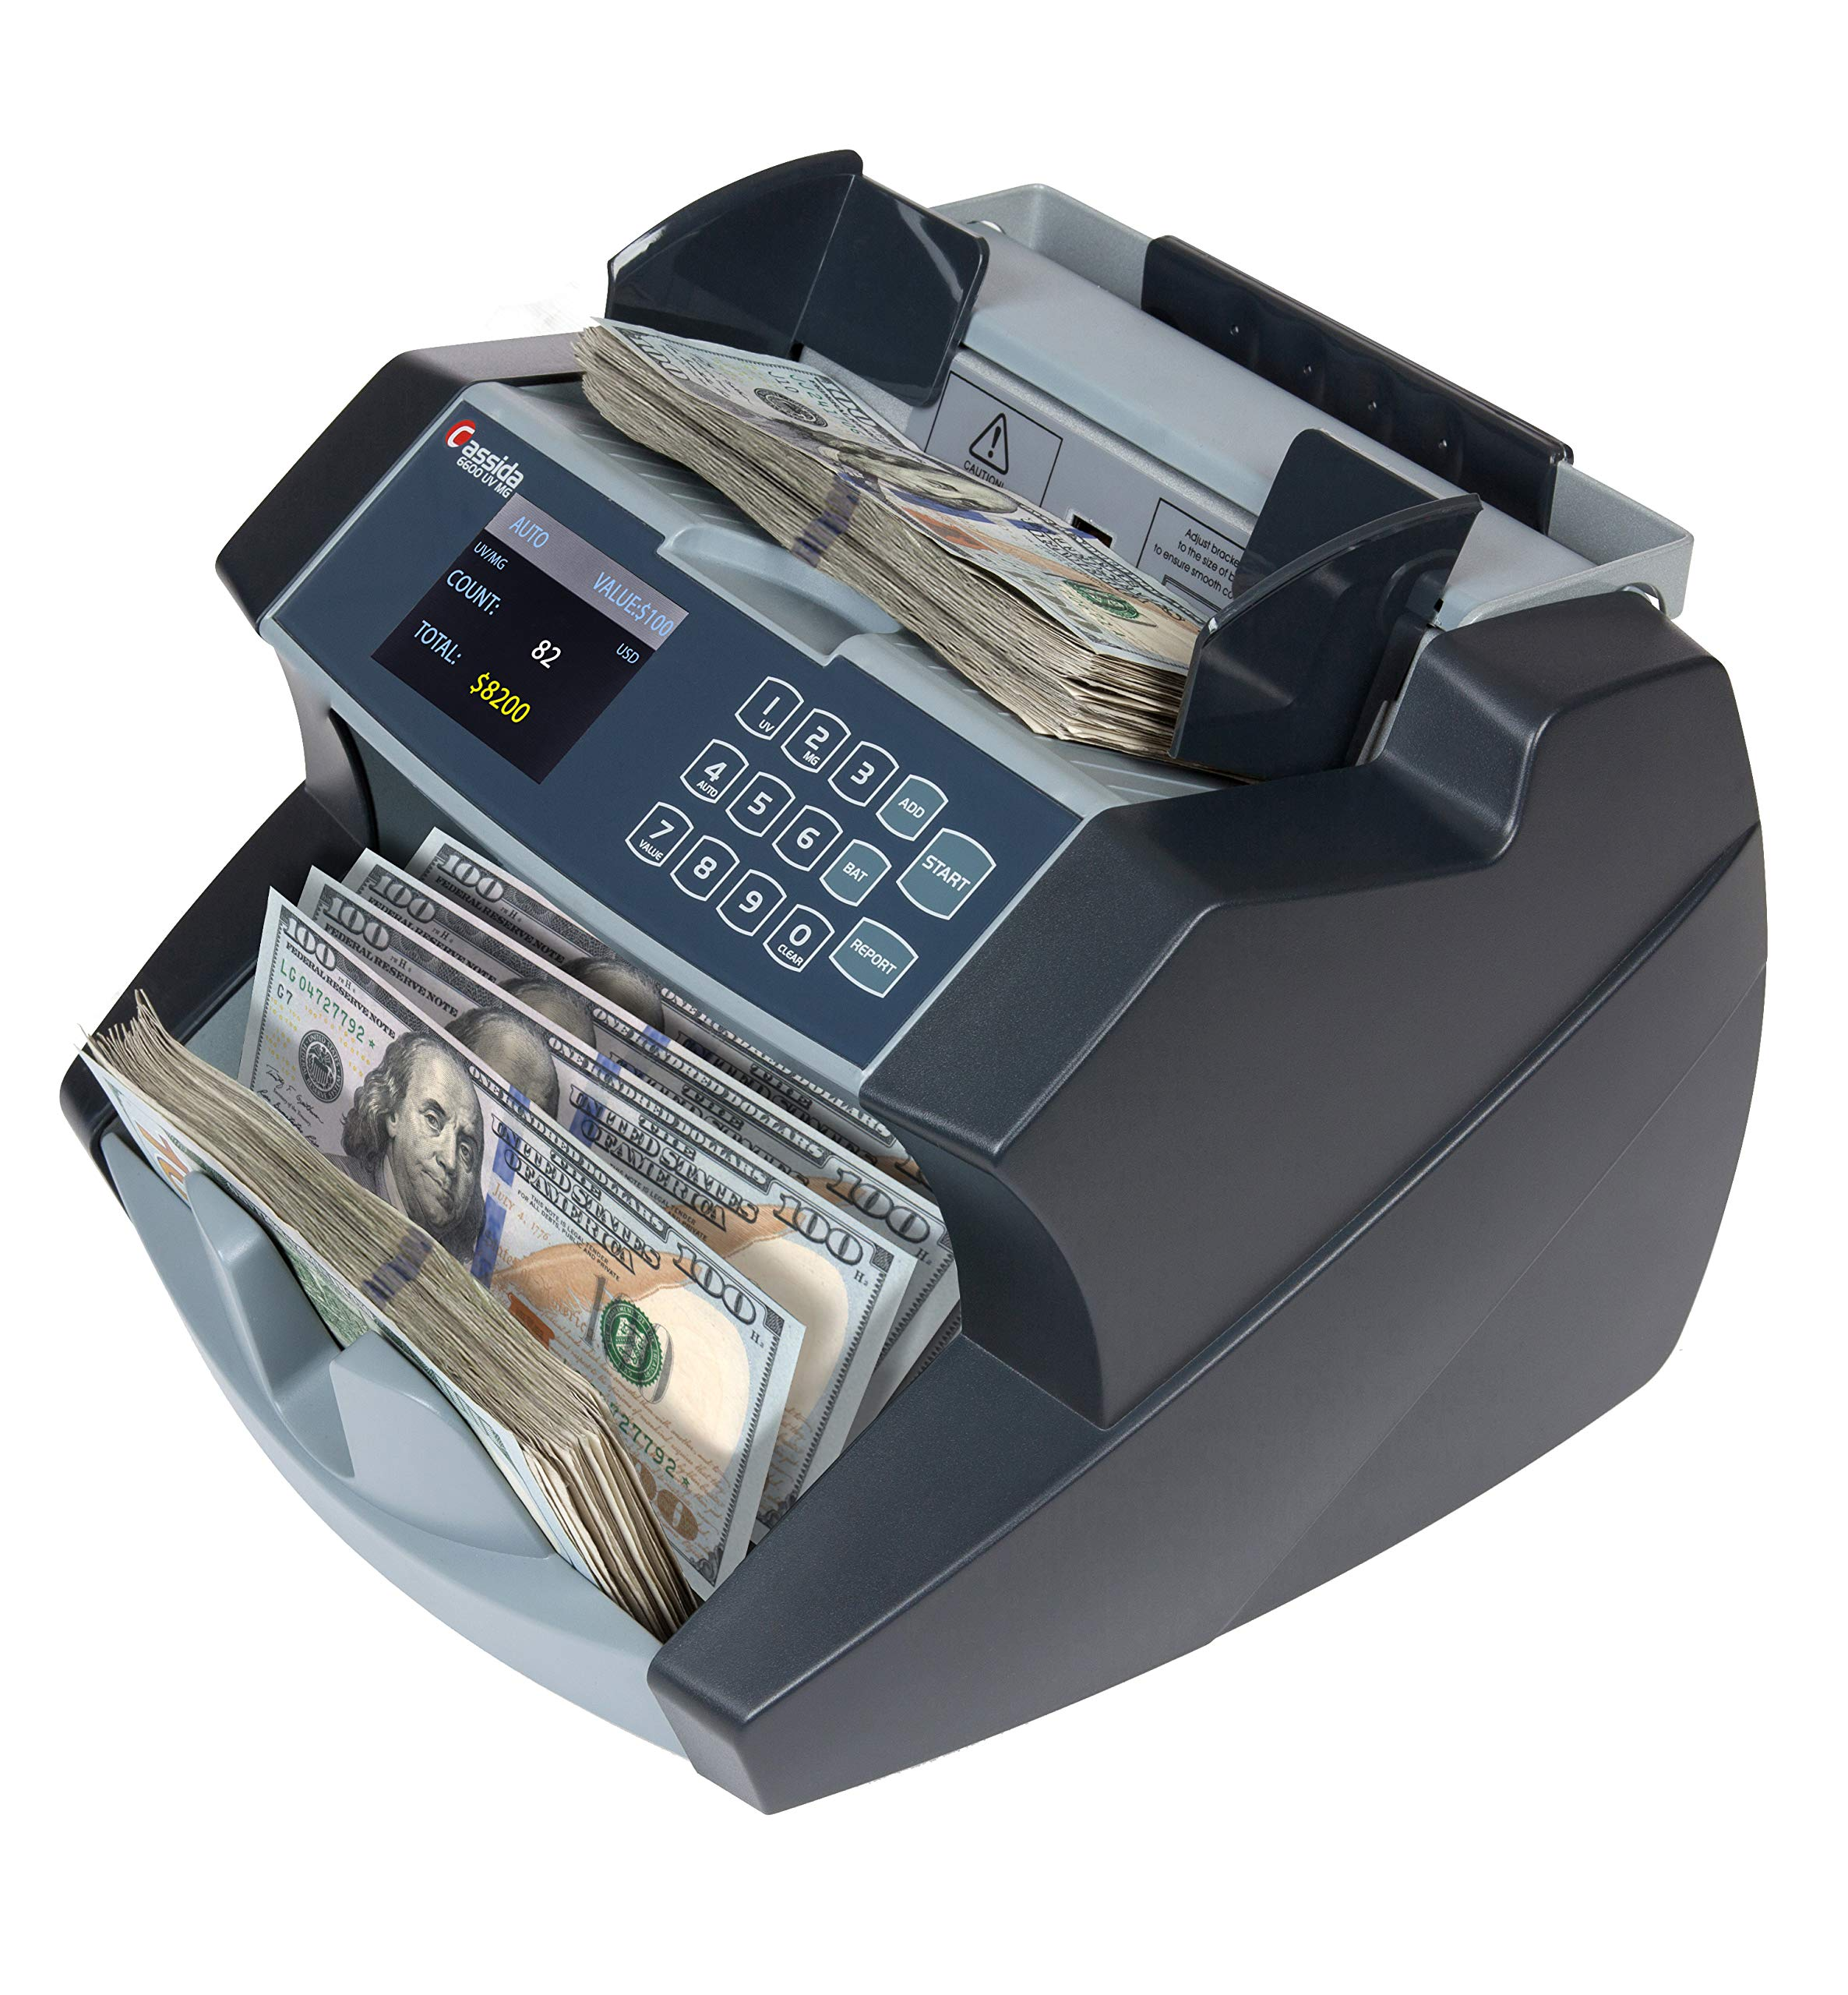 Cassida 6600 UV/MG Counterfeit Detection Business Grade Currency Counter by Cassida